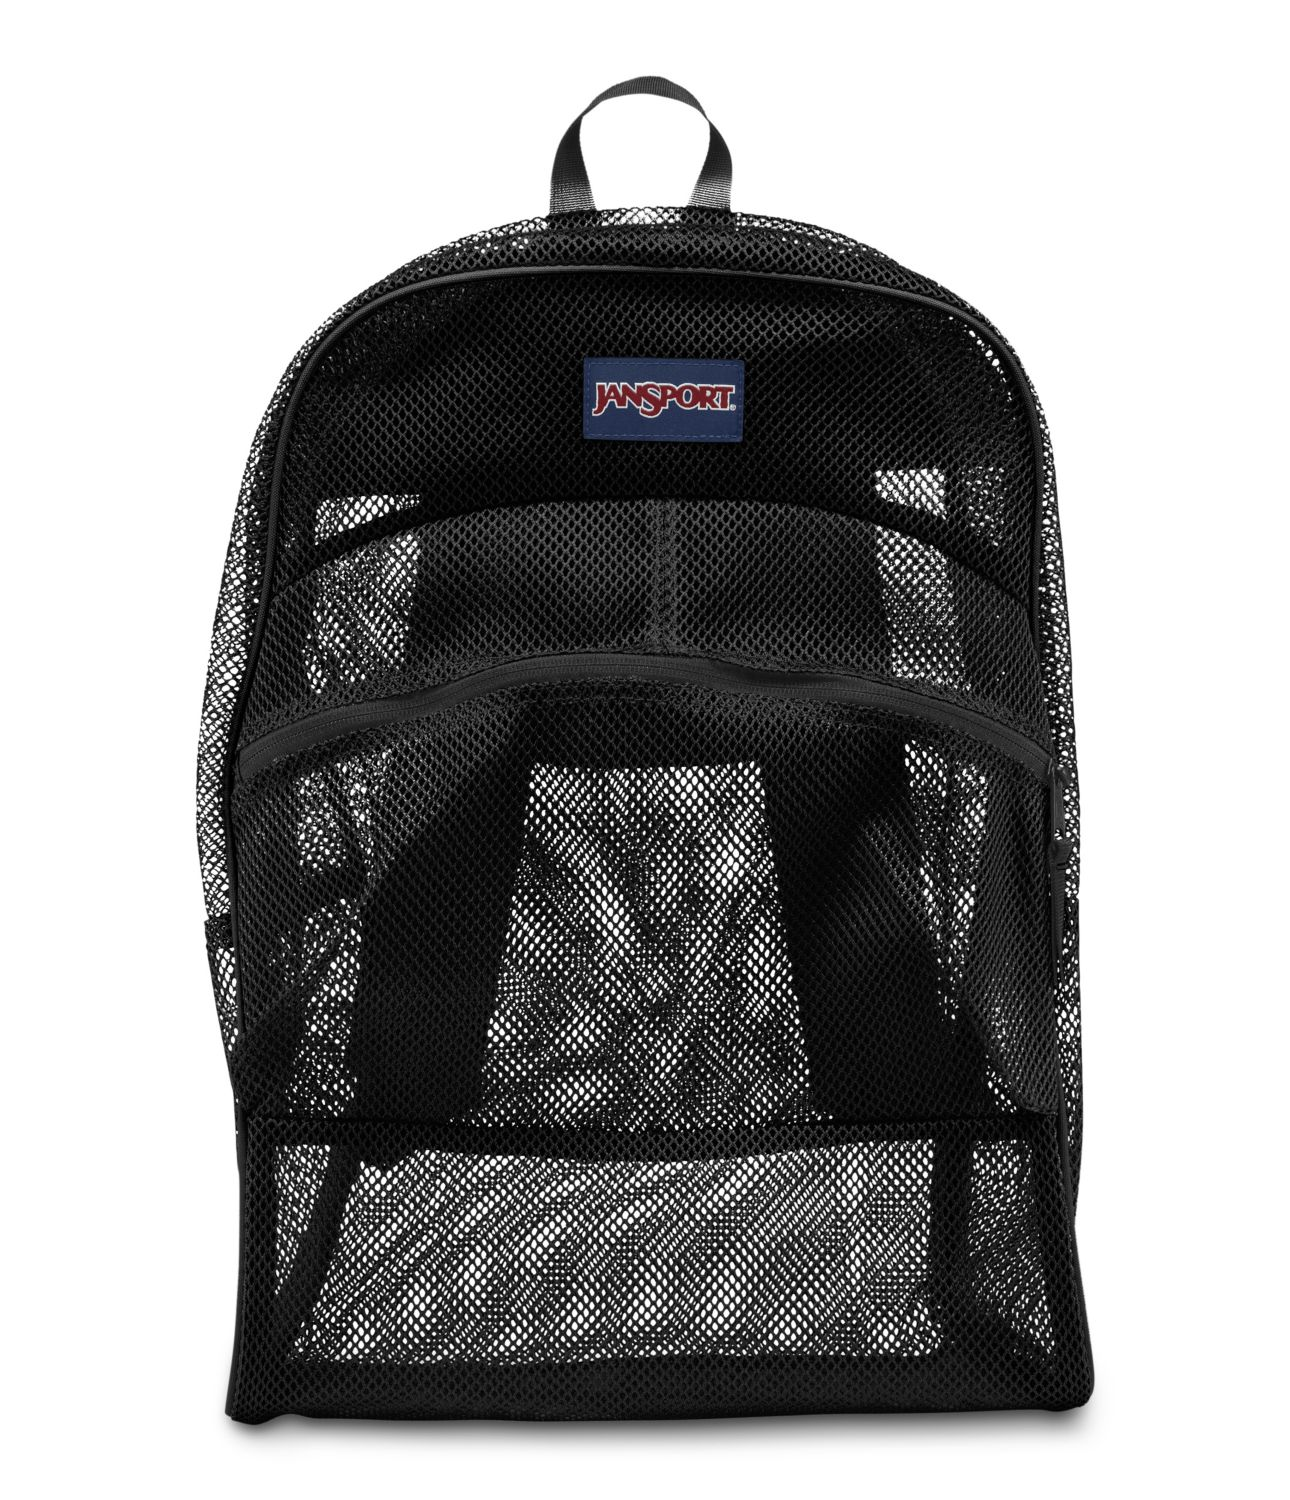 JanSport Mesh Pack School Backpack - Black - Fantasyard Costume ...